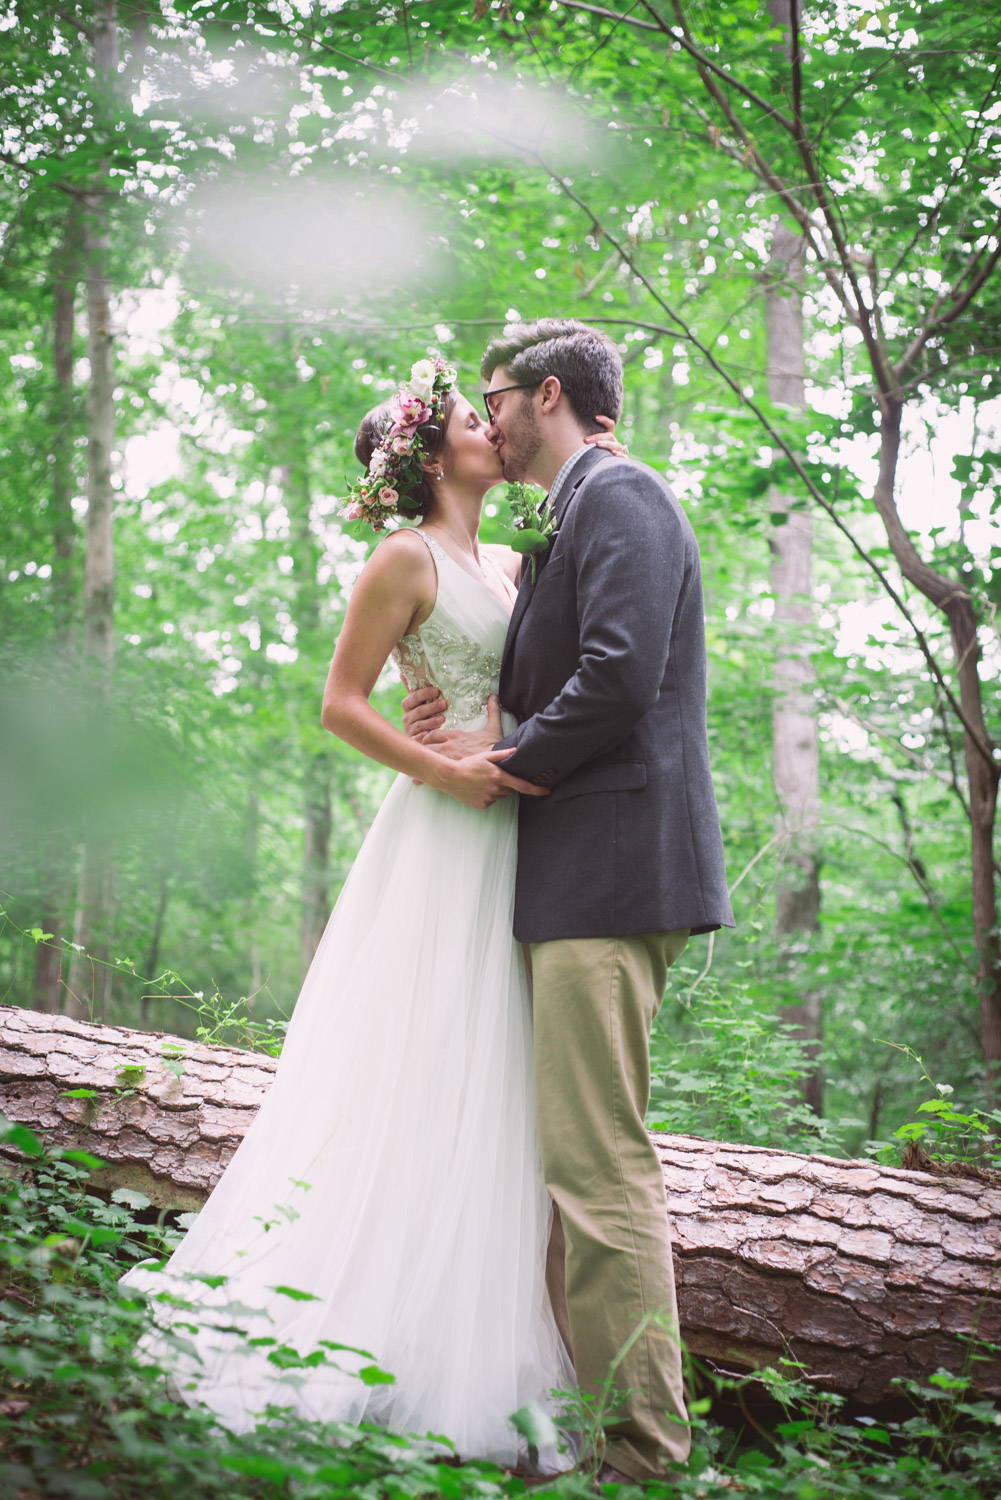 Atlanta-Wedding-Photographer-LeahAndMark-003